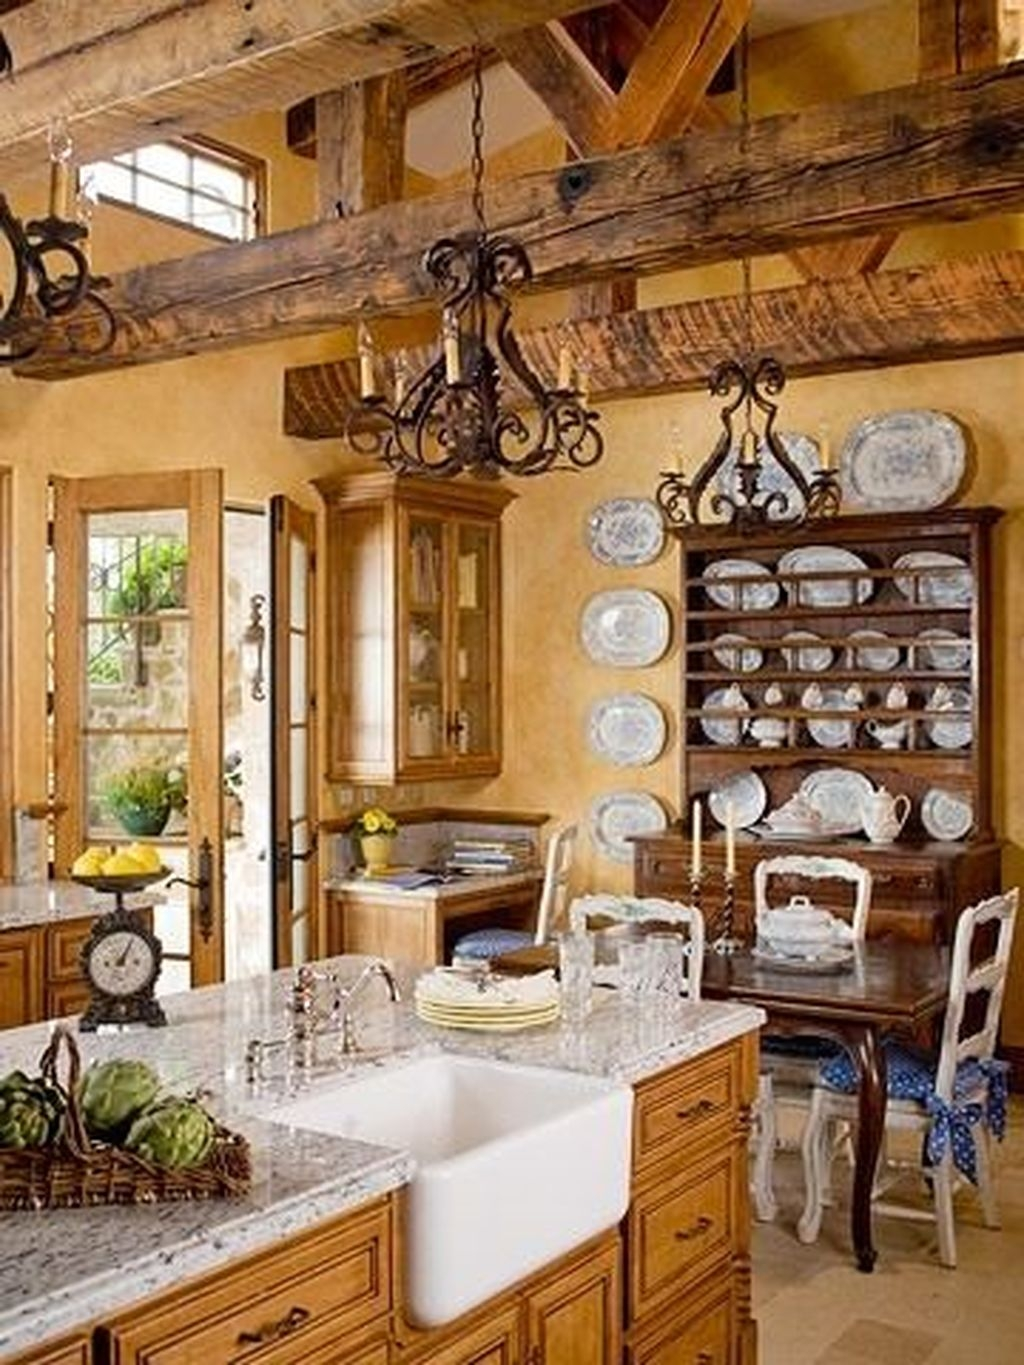 The Best French Country Style Kitchen Decor Ideas 36